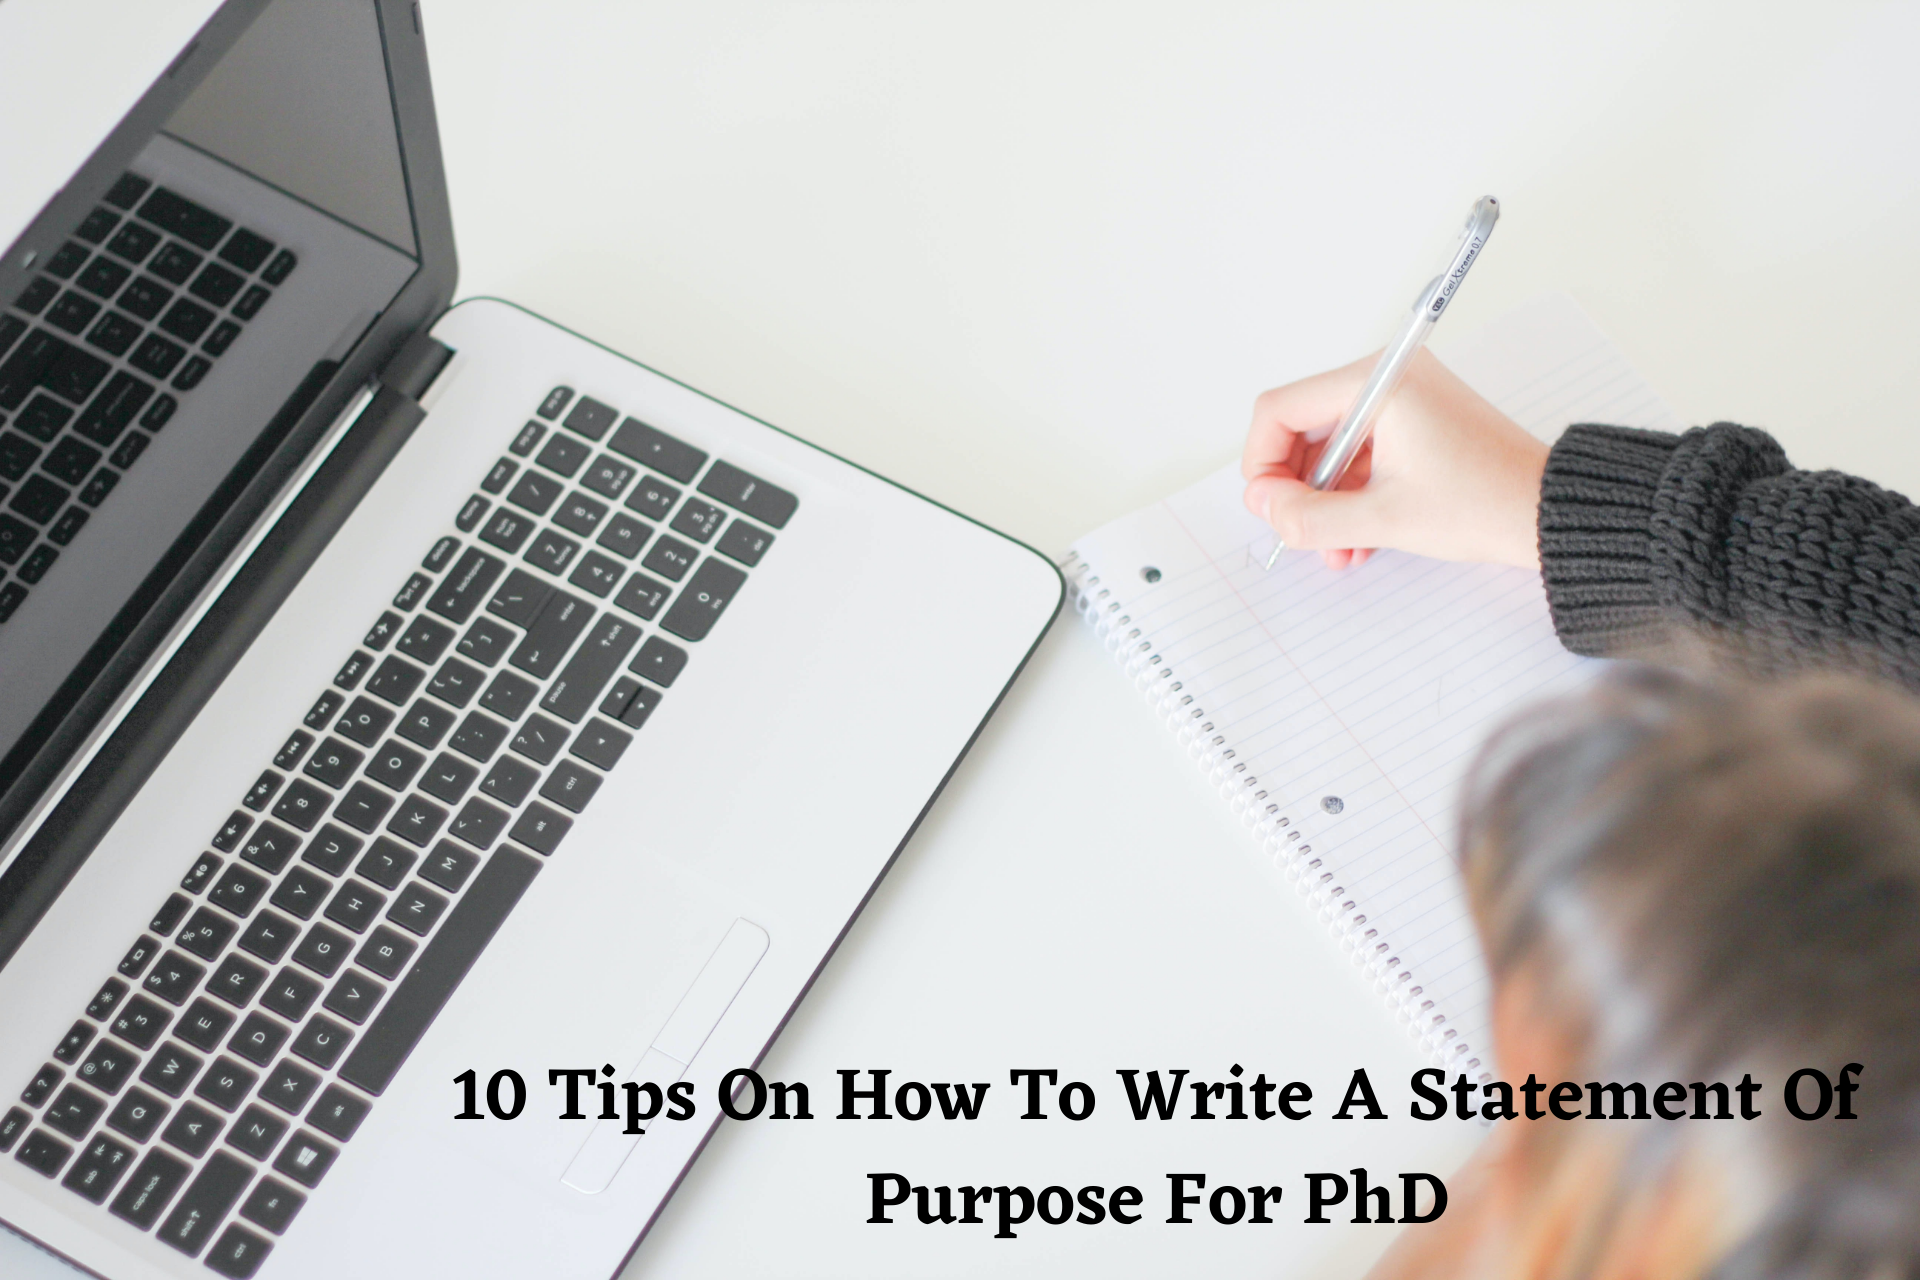 10 Tips On How To Write A Statement Of Purpose For PhD